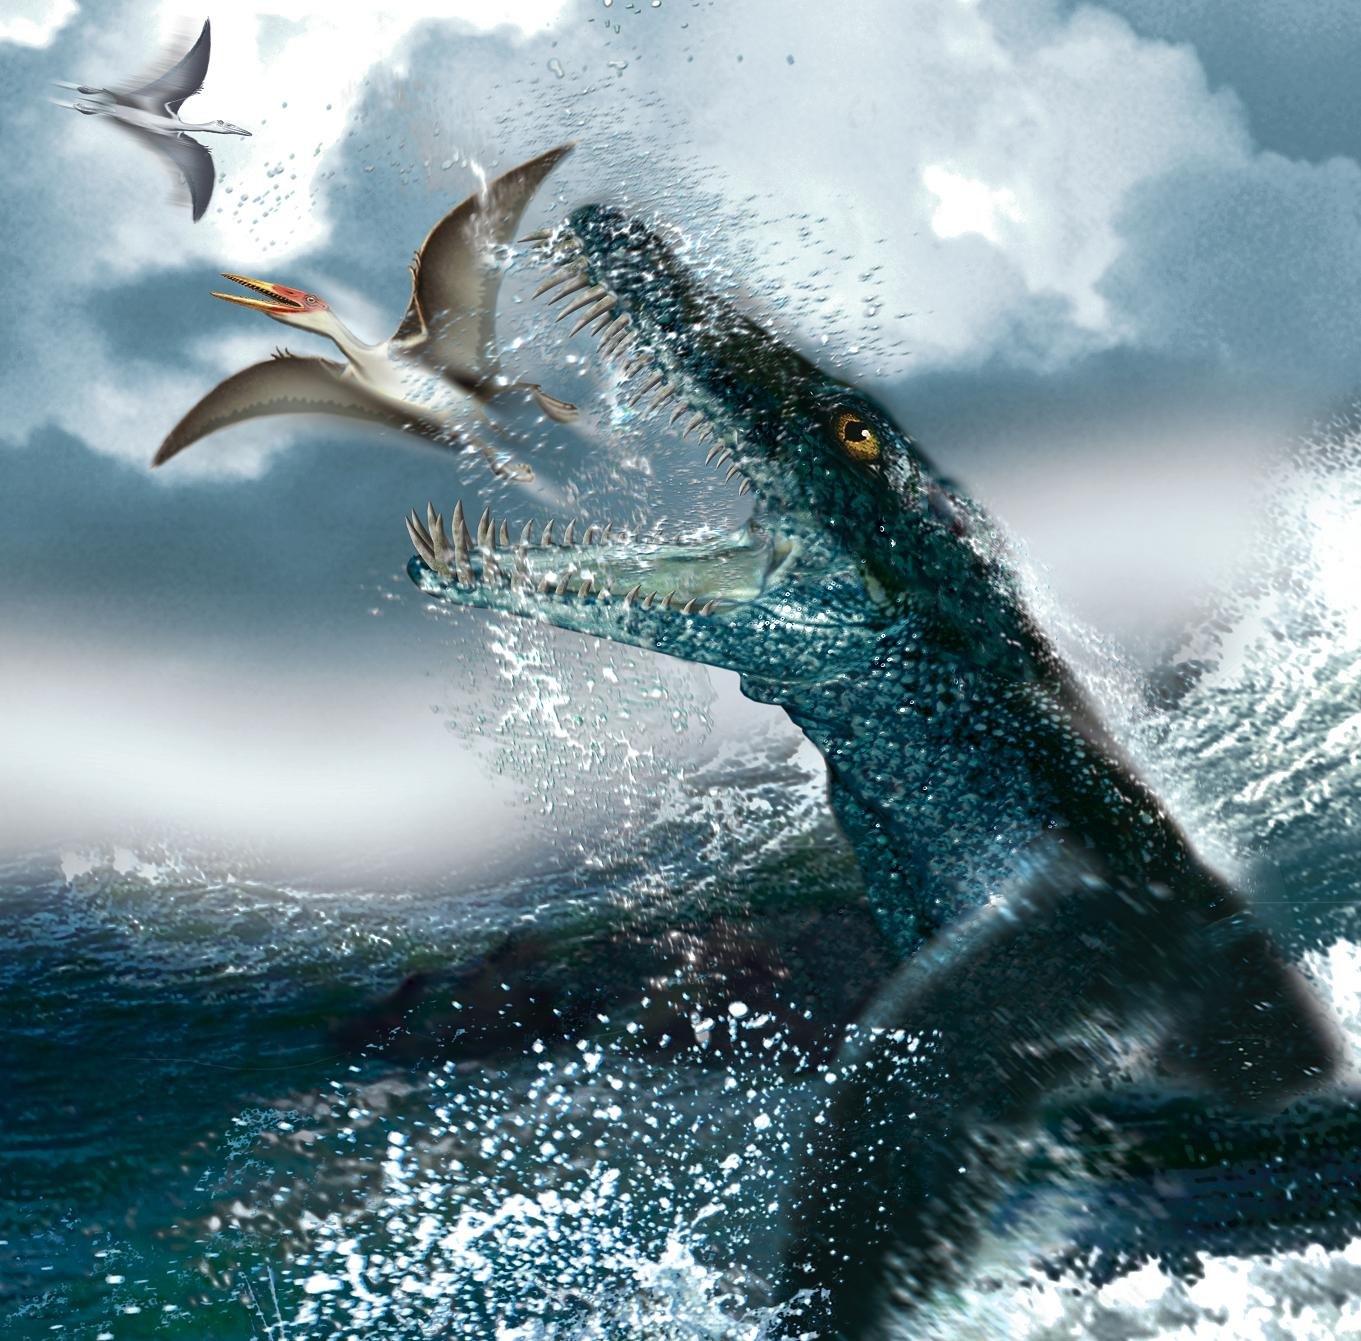 150-million-year-old sea monster discovered in Poland